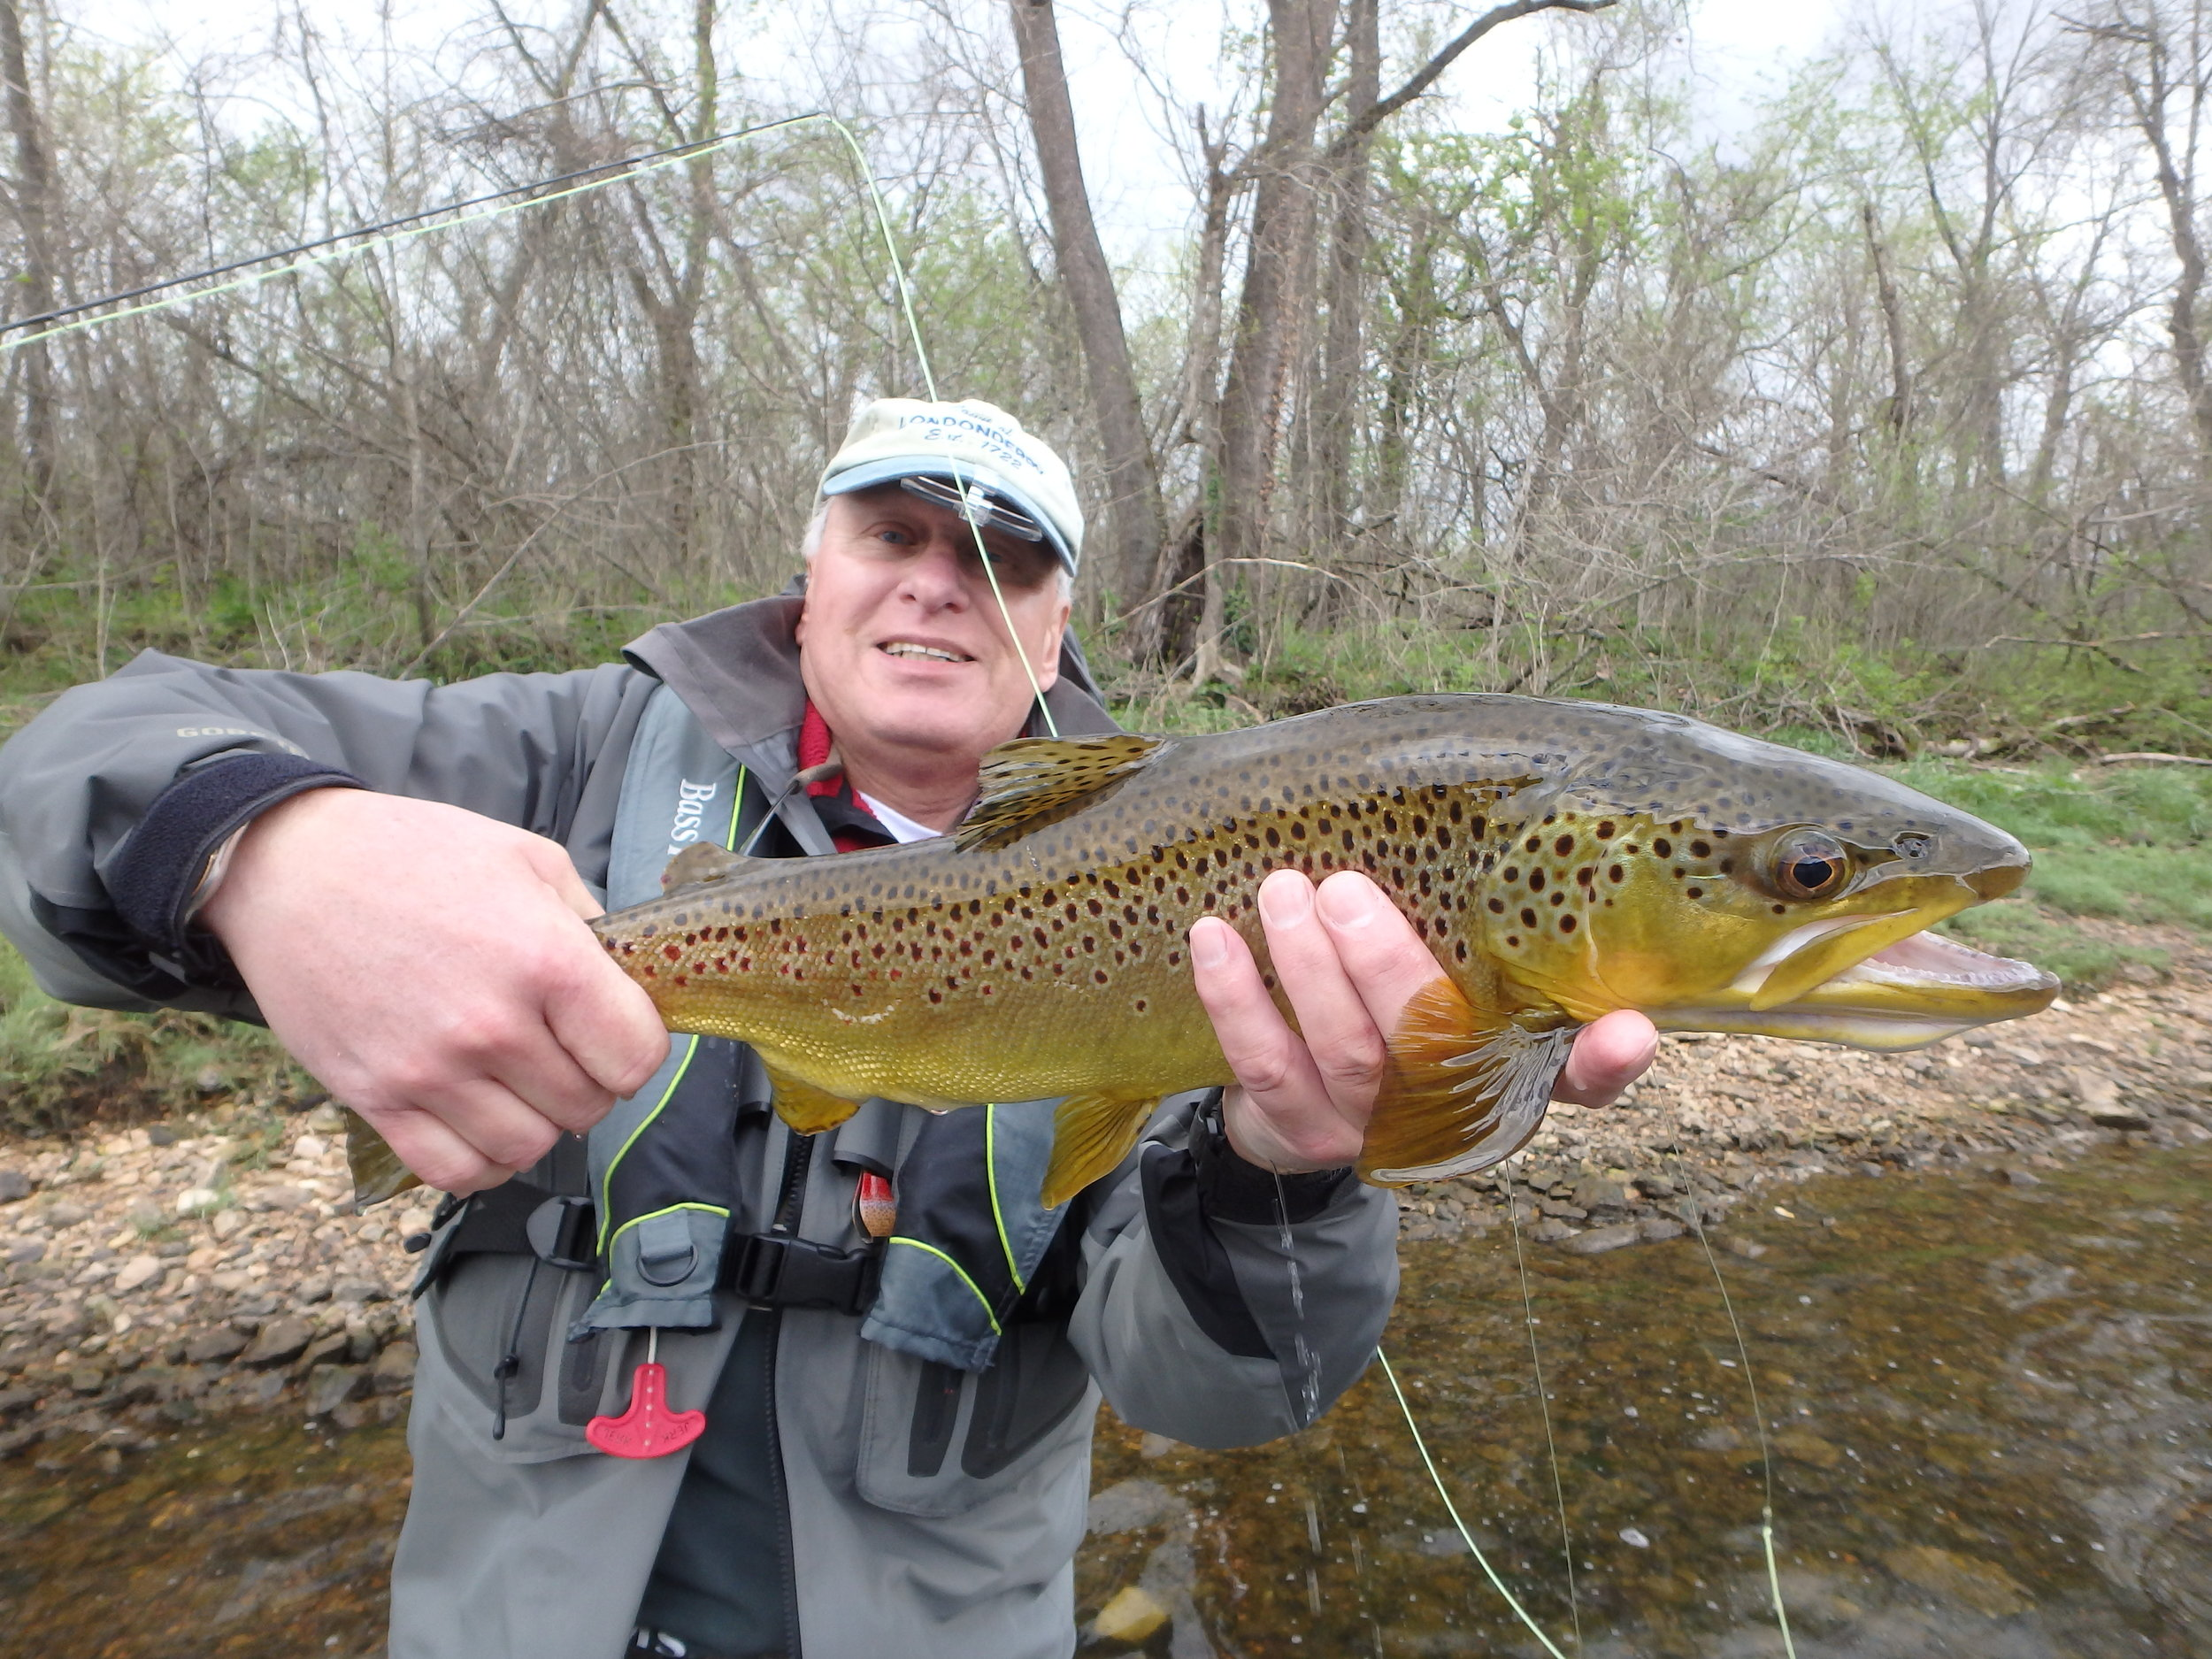 Client Dick Peterson with a healthy Arkansas Brown Trout.